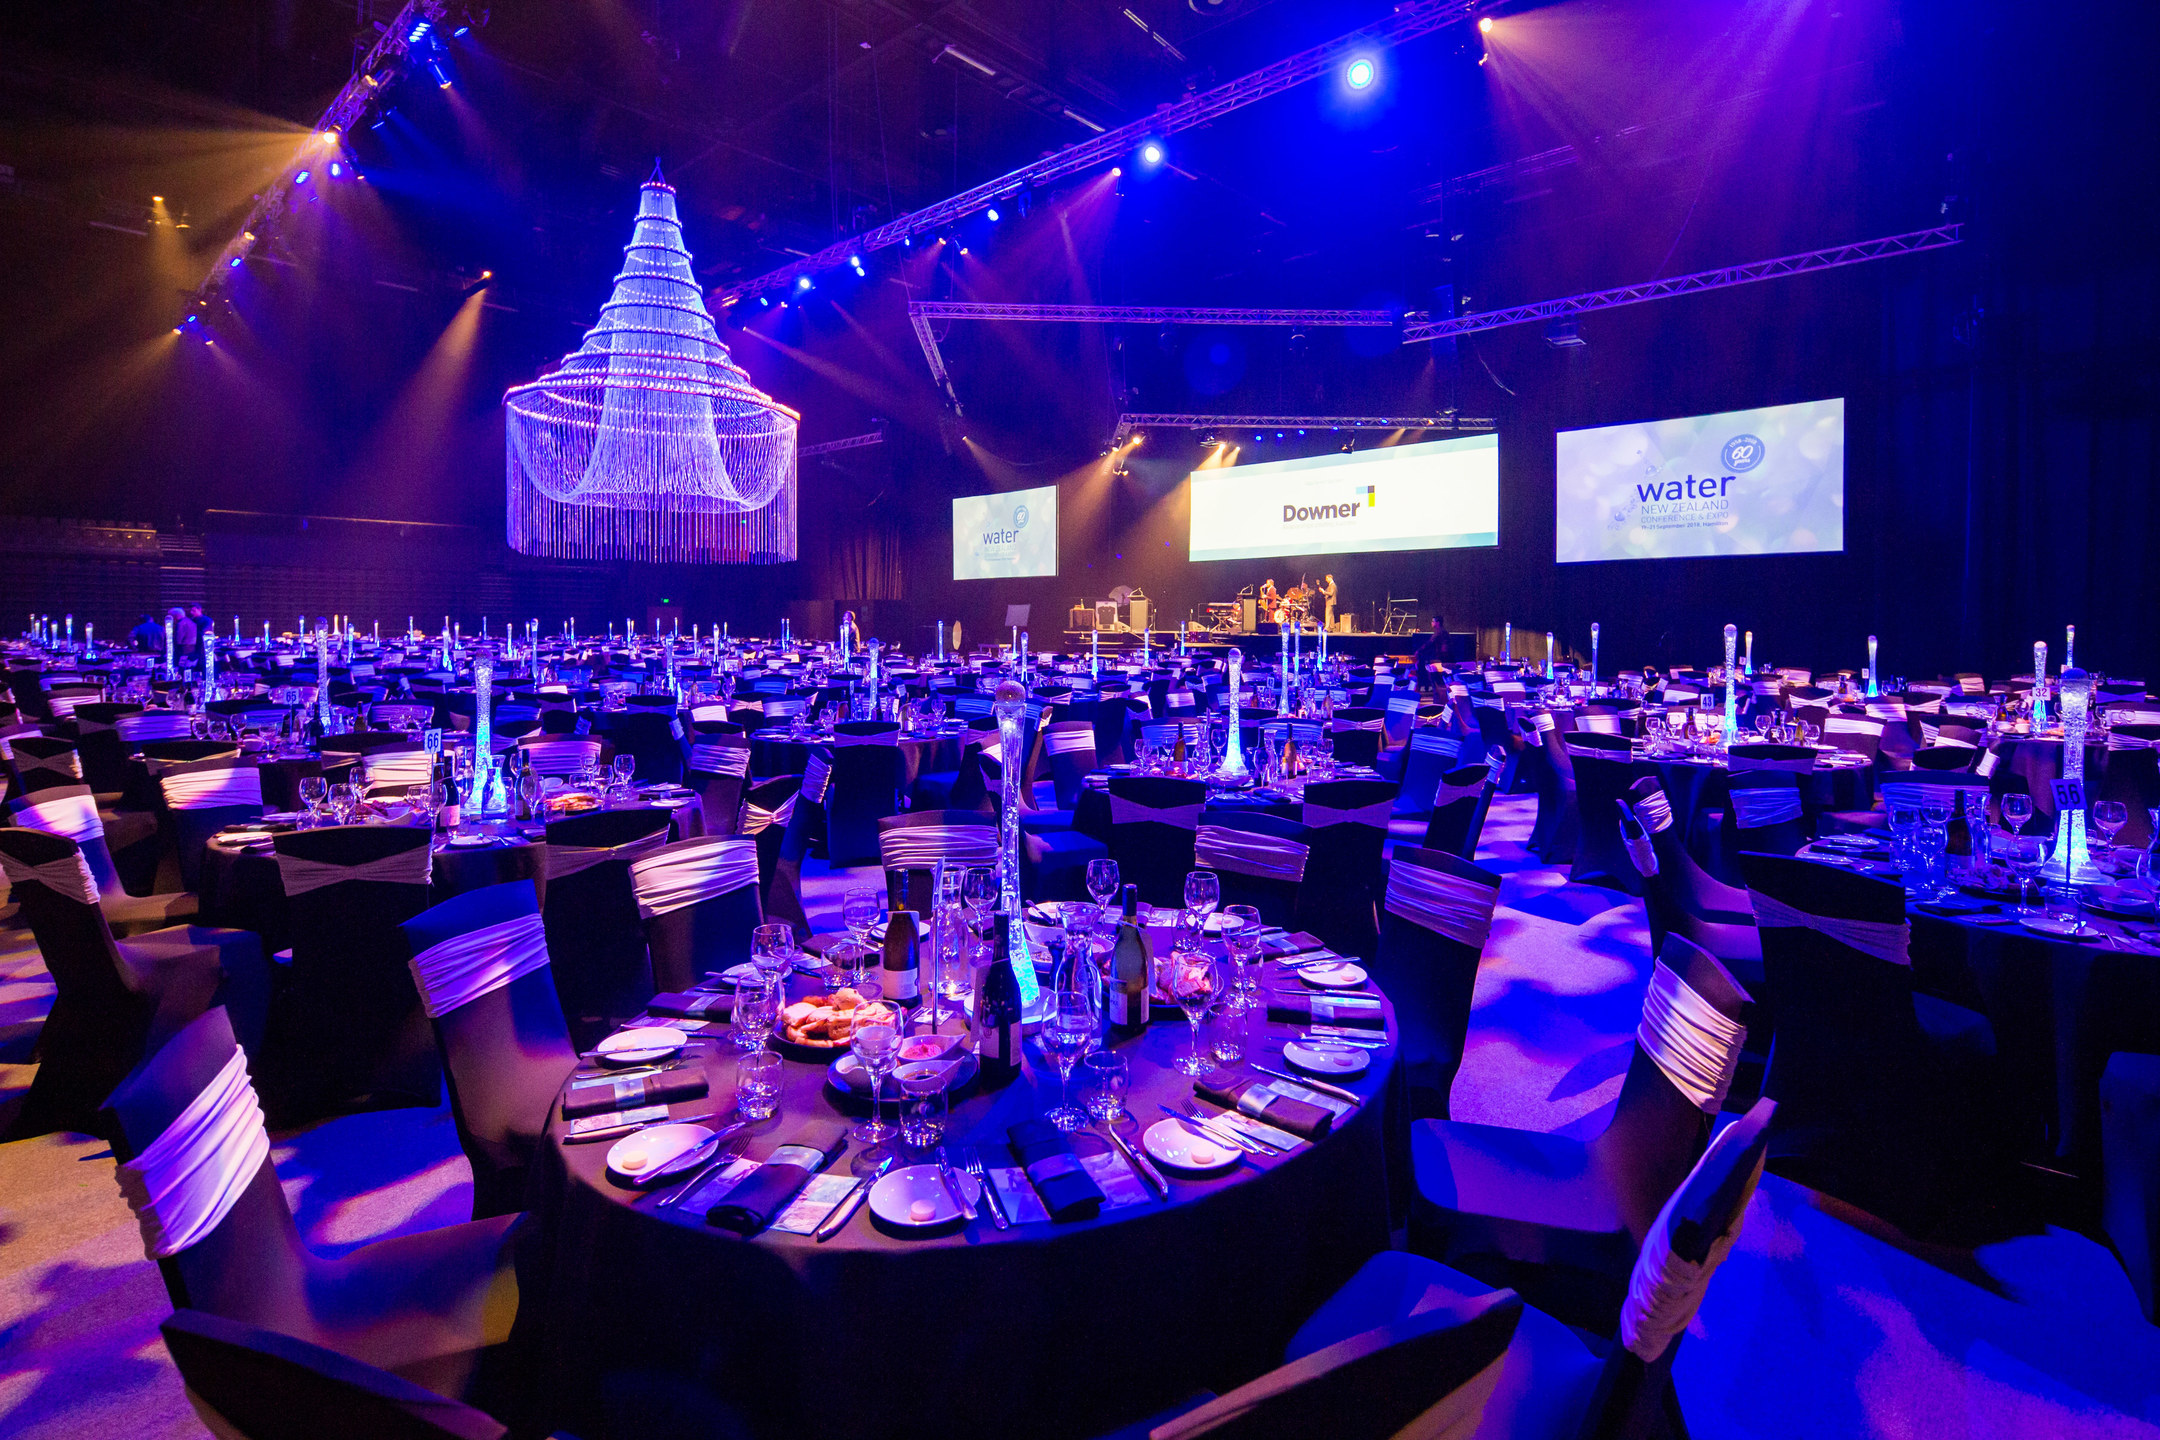 Water NZ Conference Banquet Setup 2018 Claudelands Arena 1